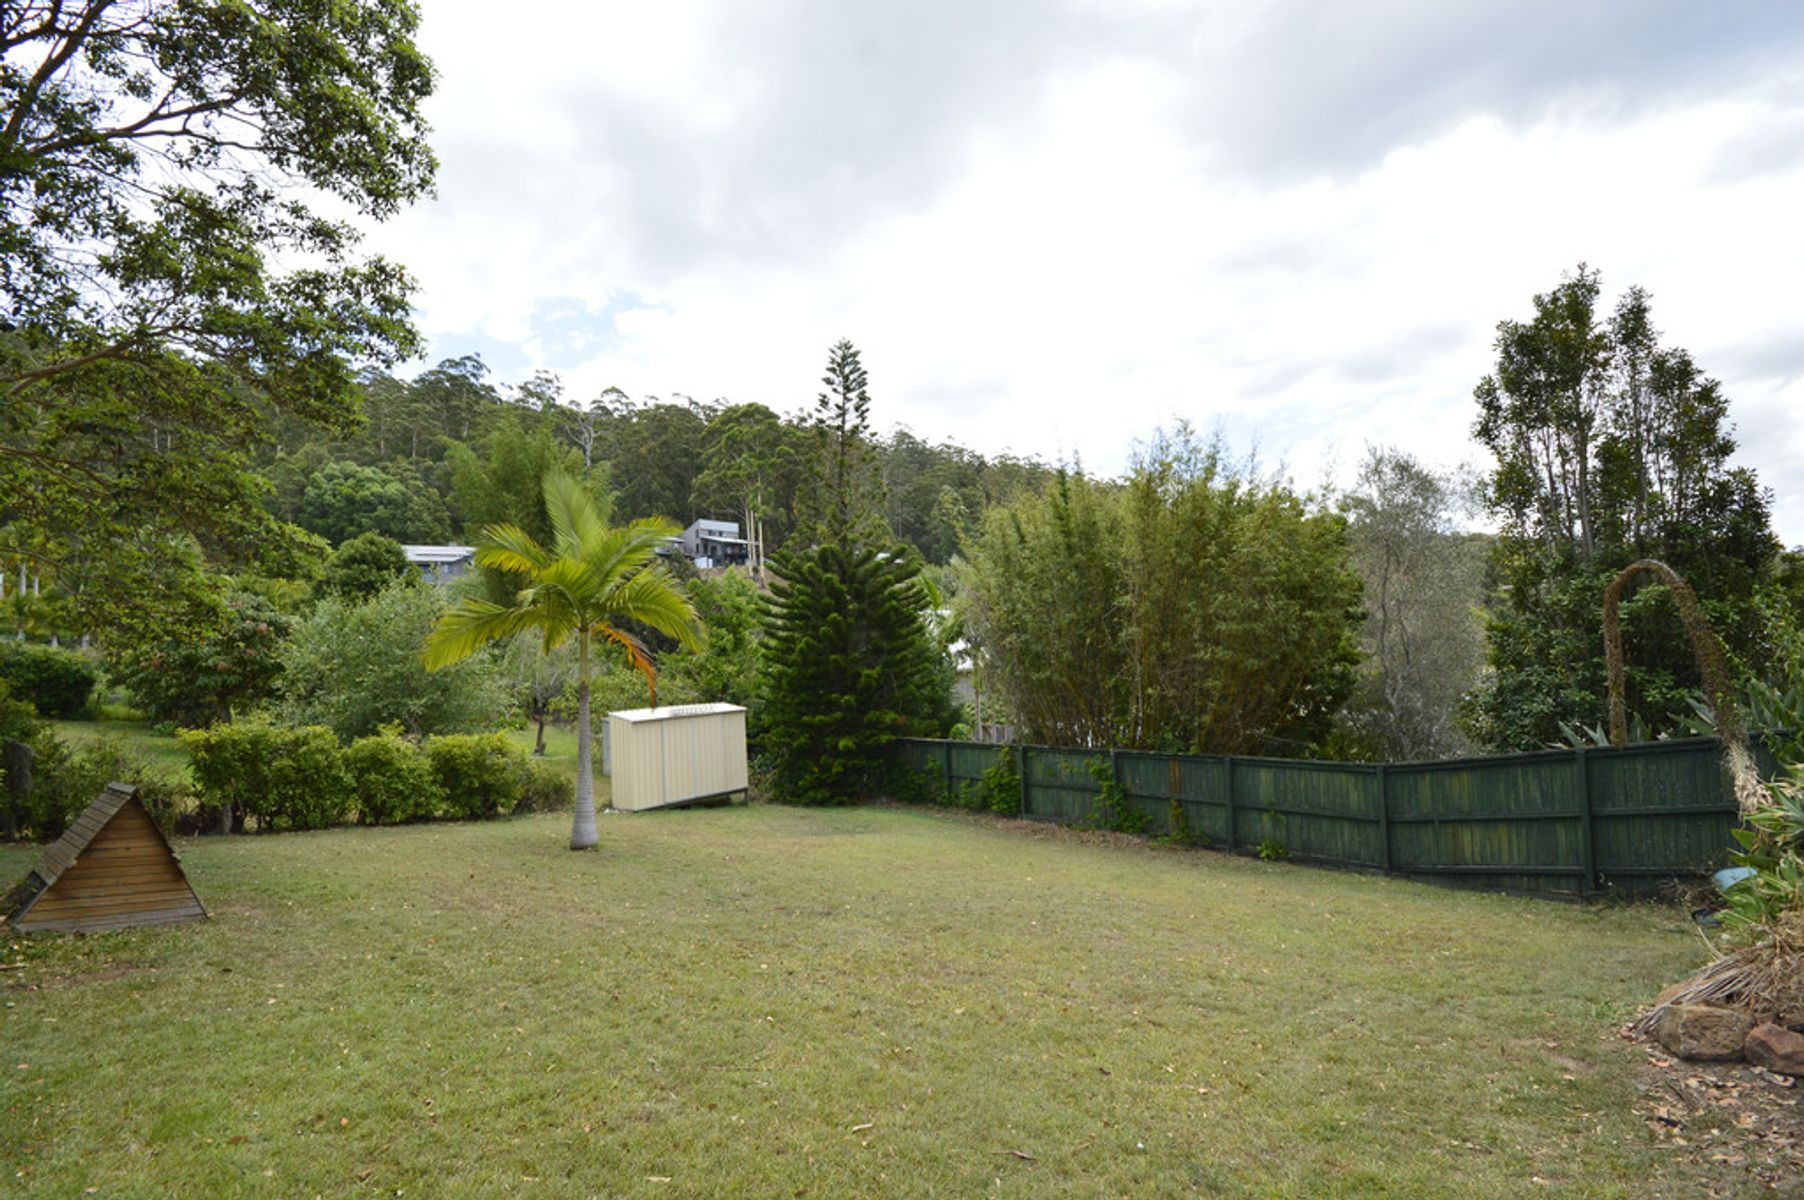 17-19 Flores Court, Tamborine Mountain, QLD 4272